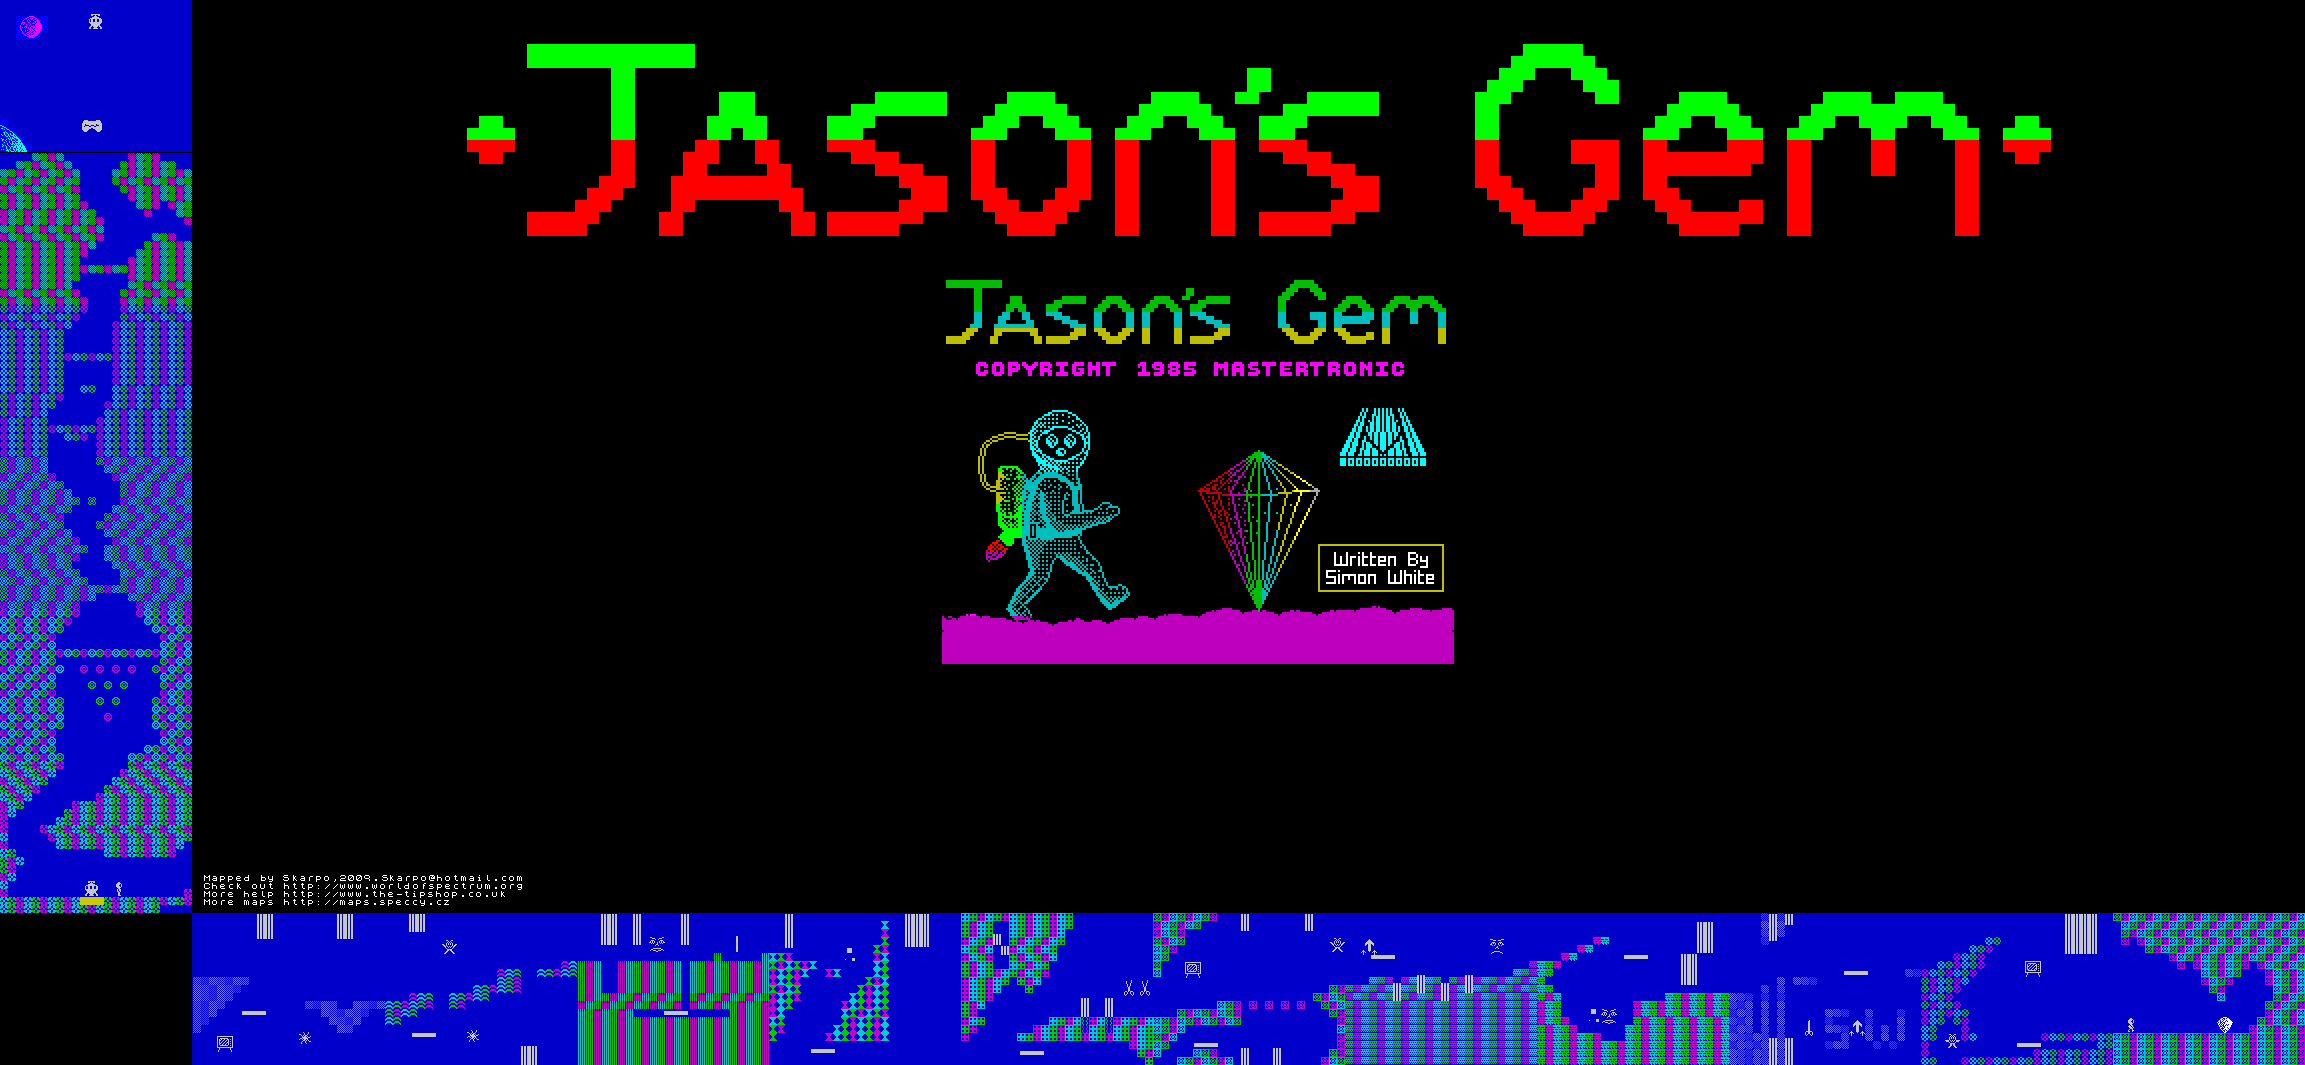 Jason's Gem - The Map